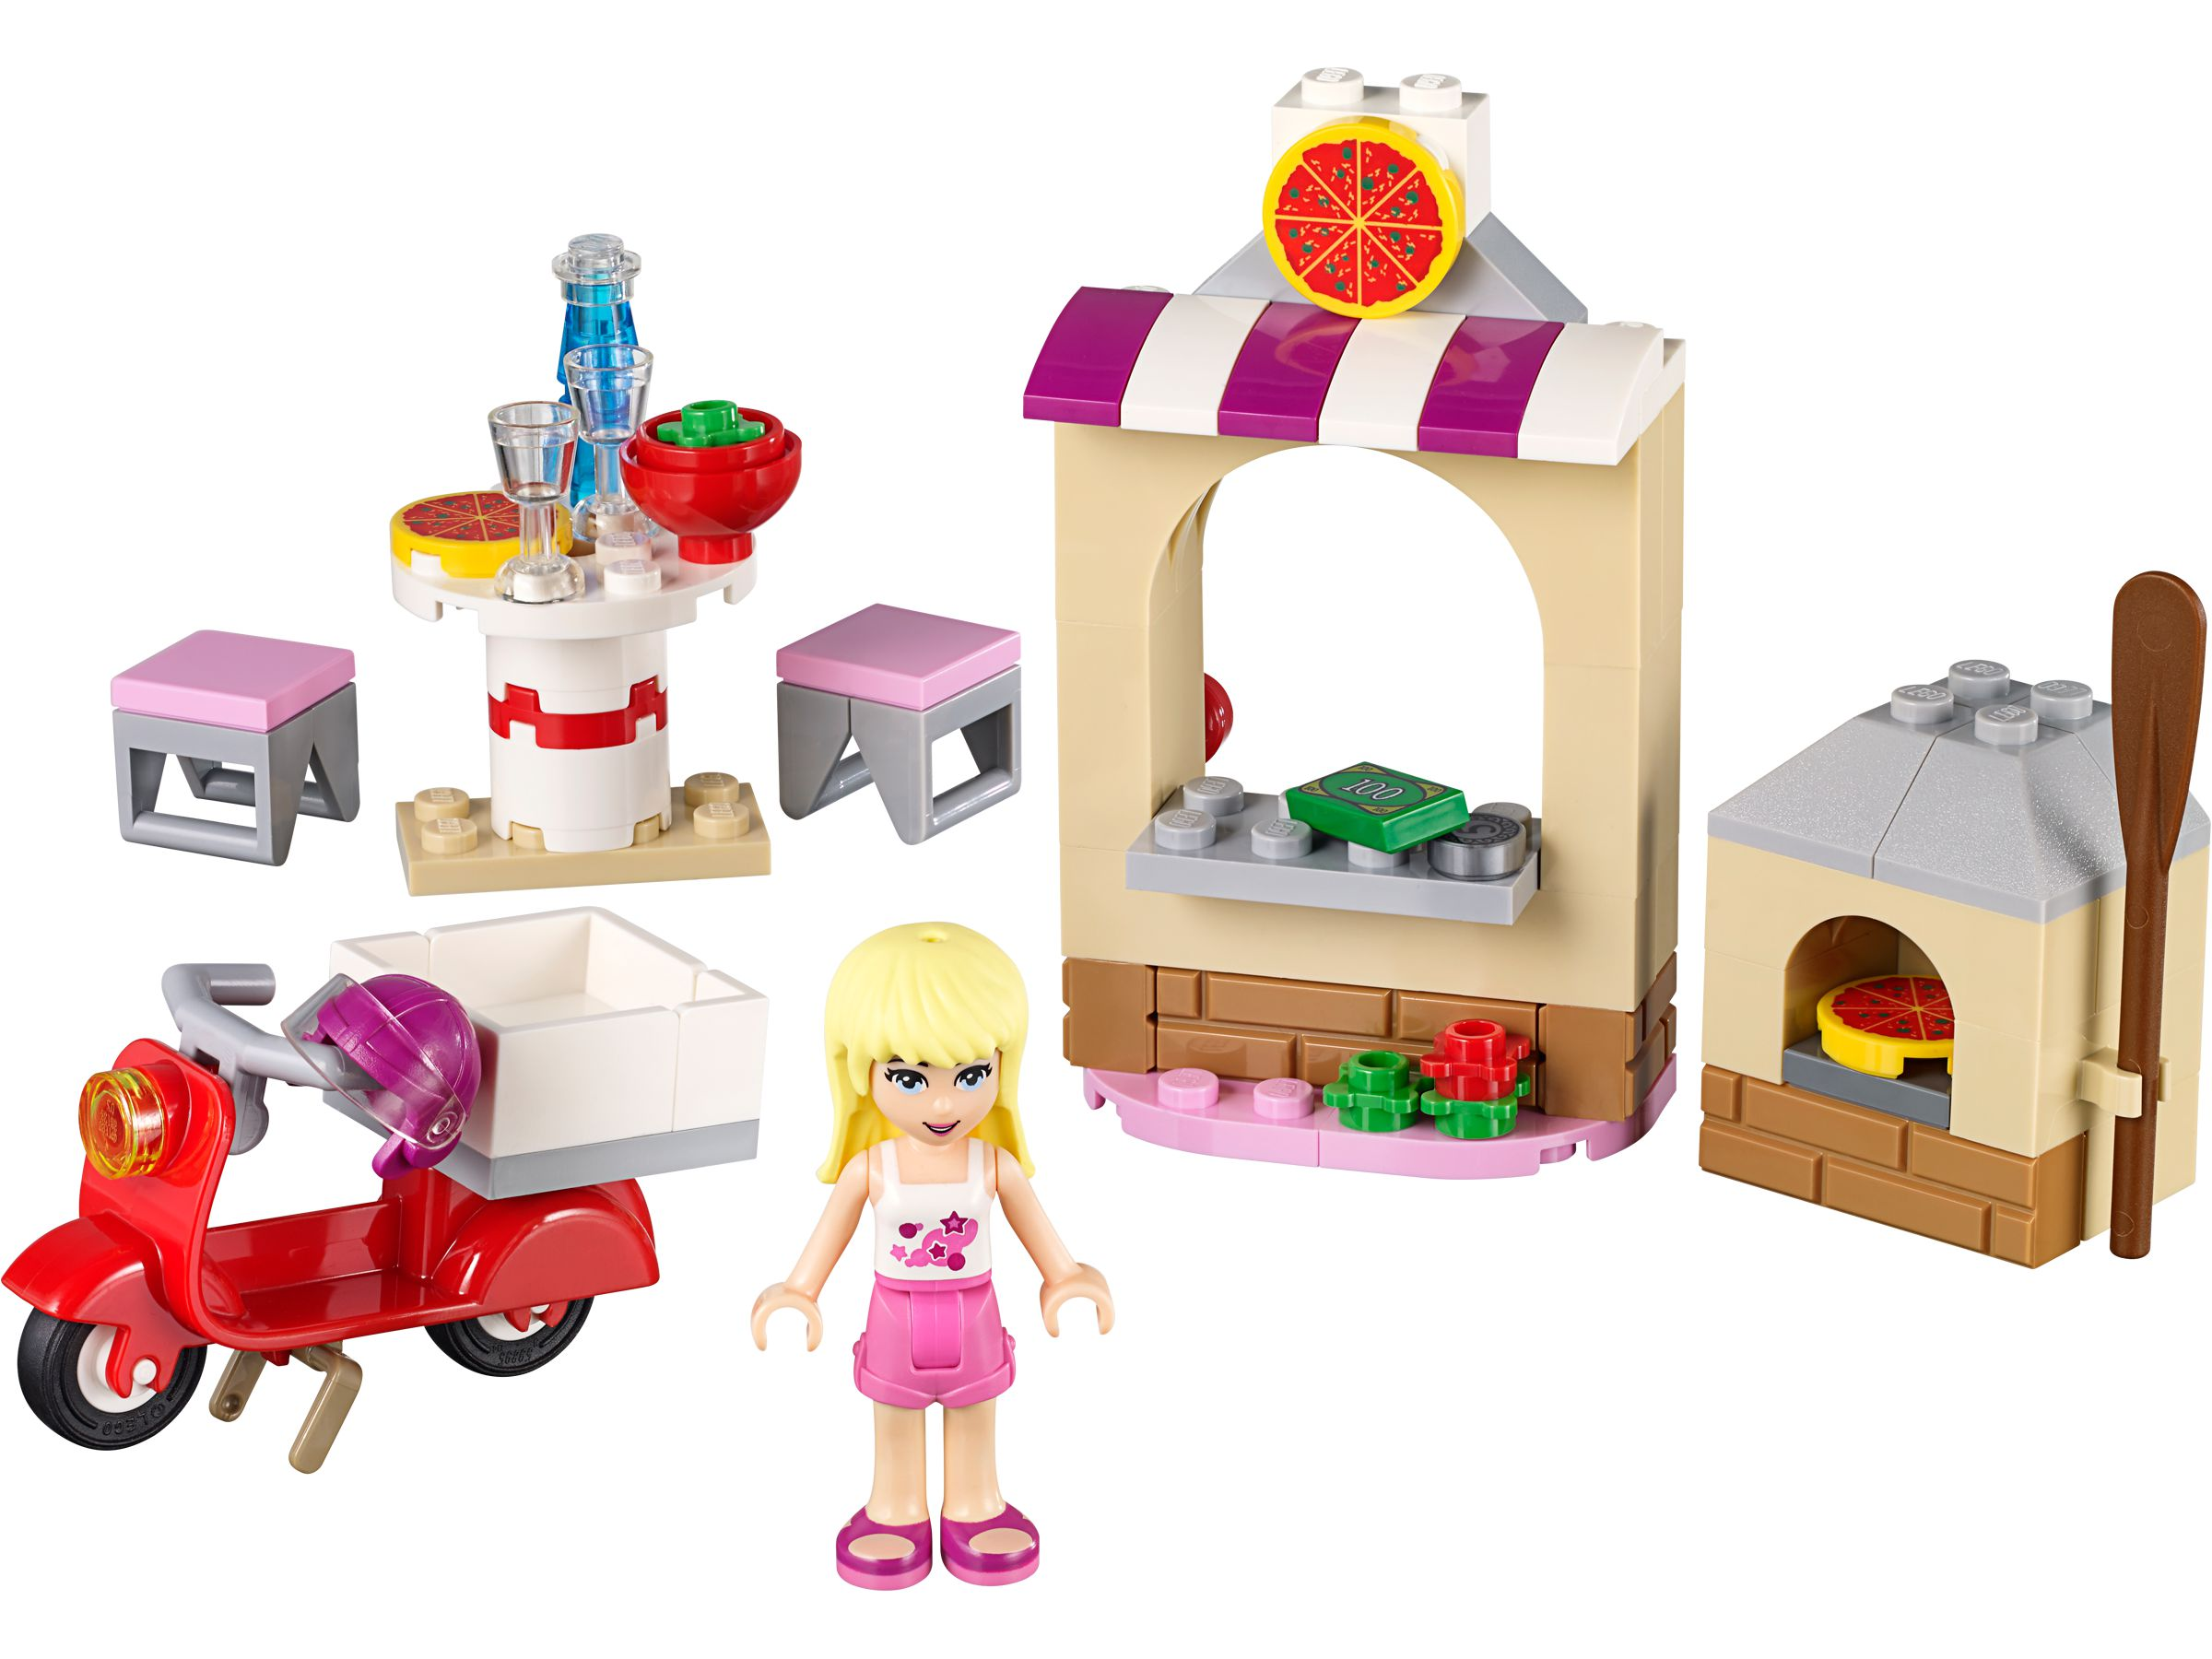 LEGO Friends 41092 Stephanies Pizzeria LEGO_41092.jpg